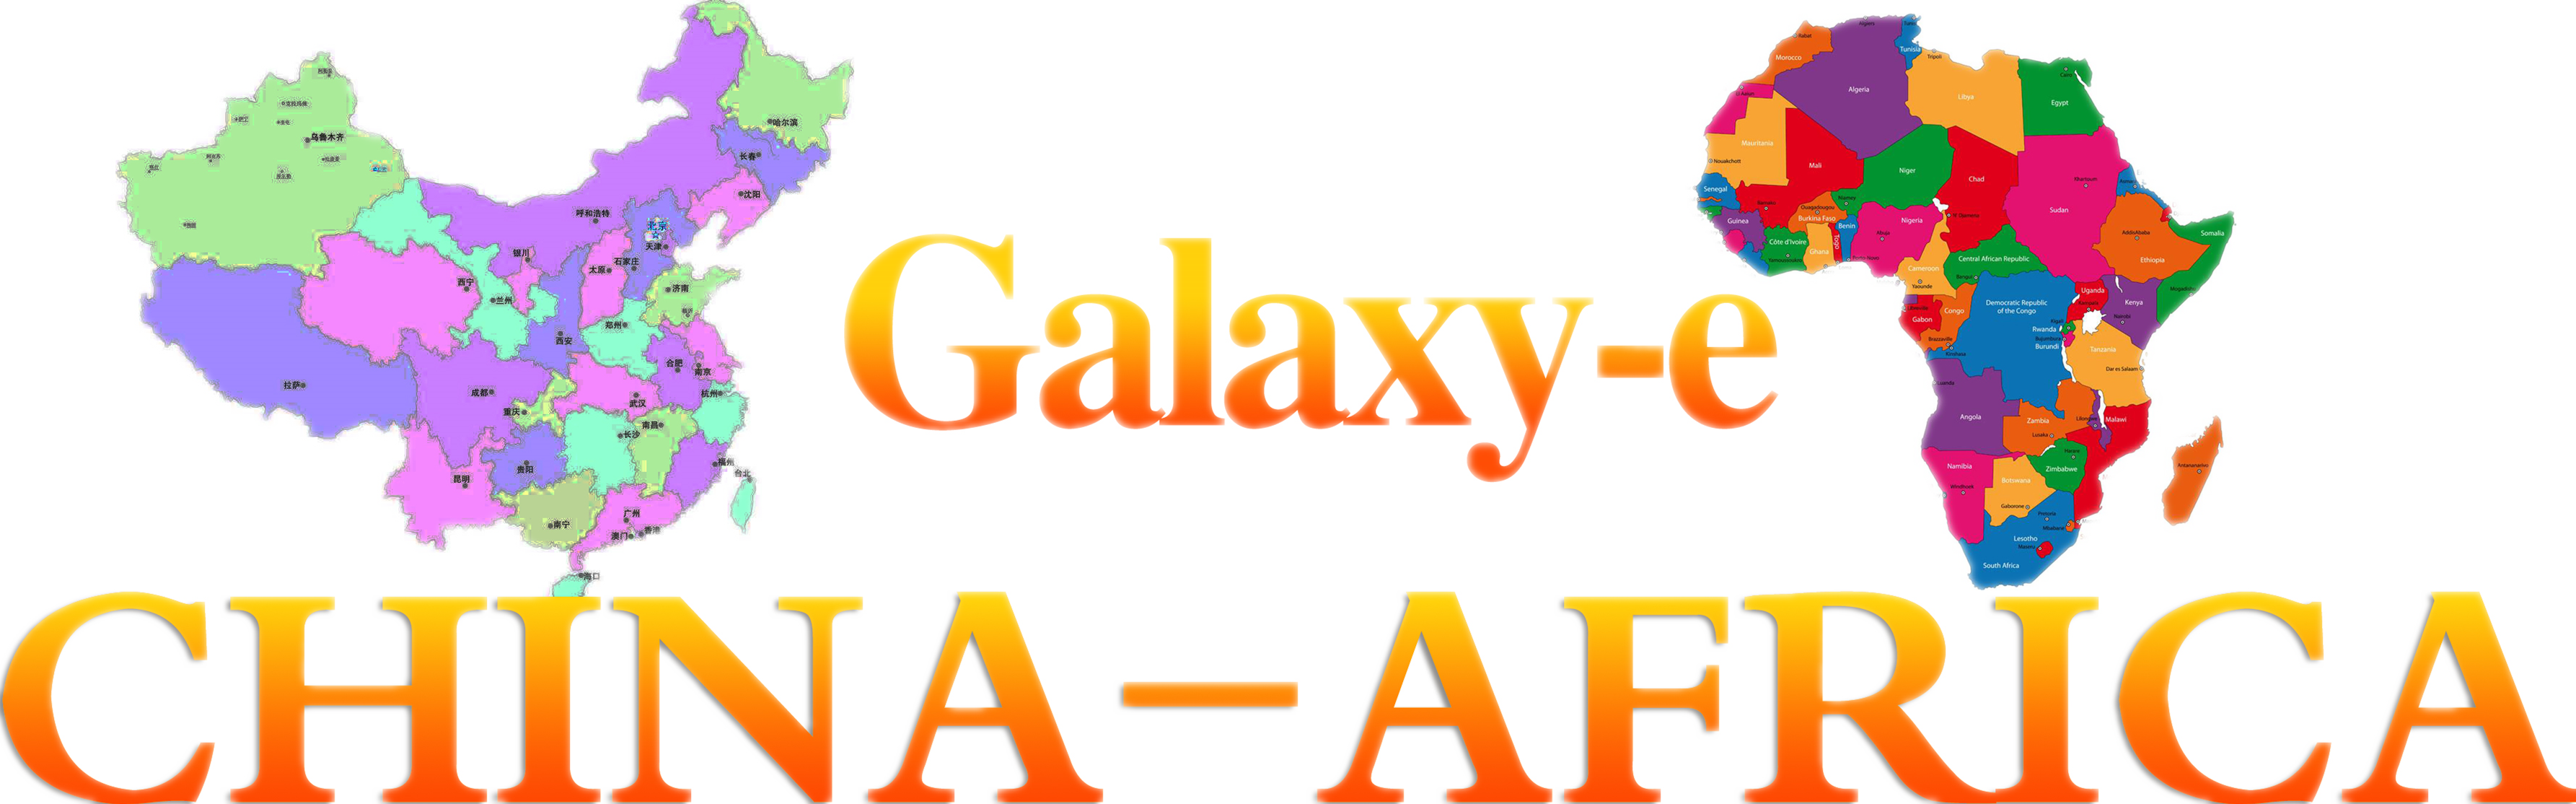 Africa Advanced Electronic Commerce ||| Galaxy-e.com